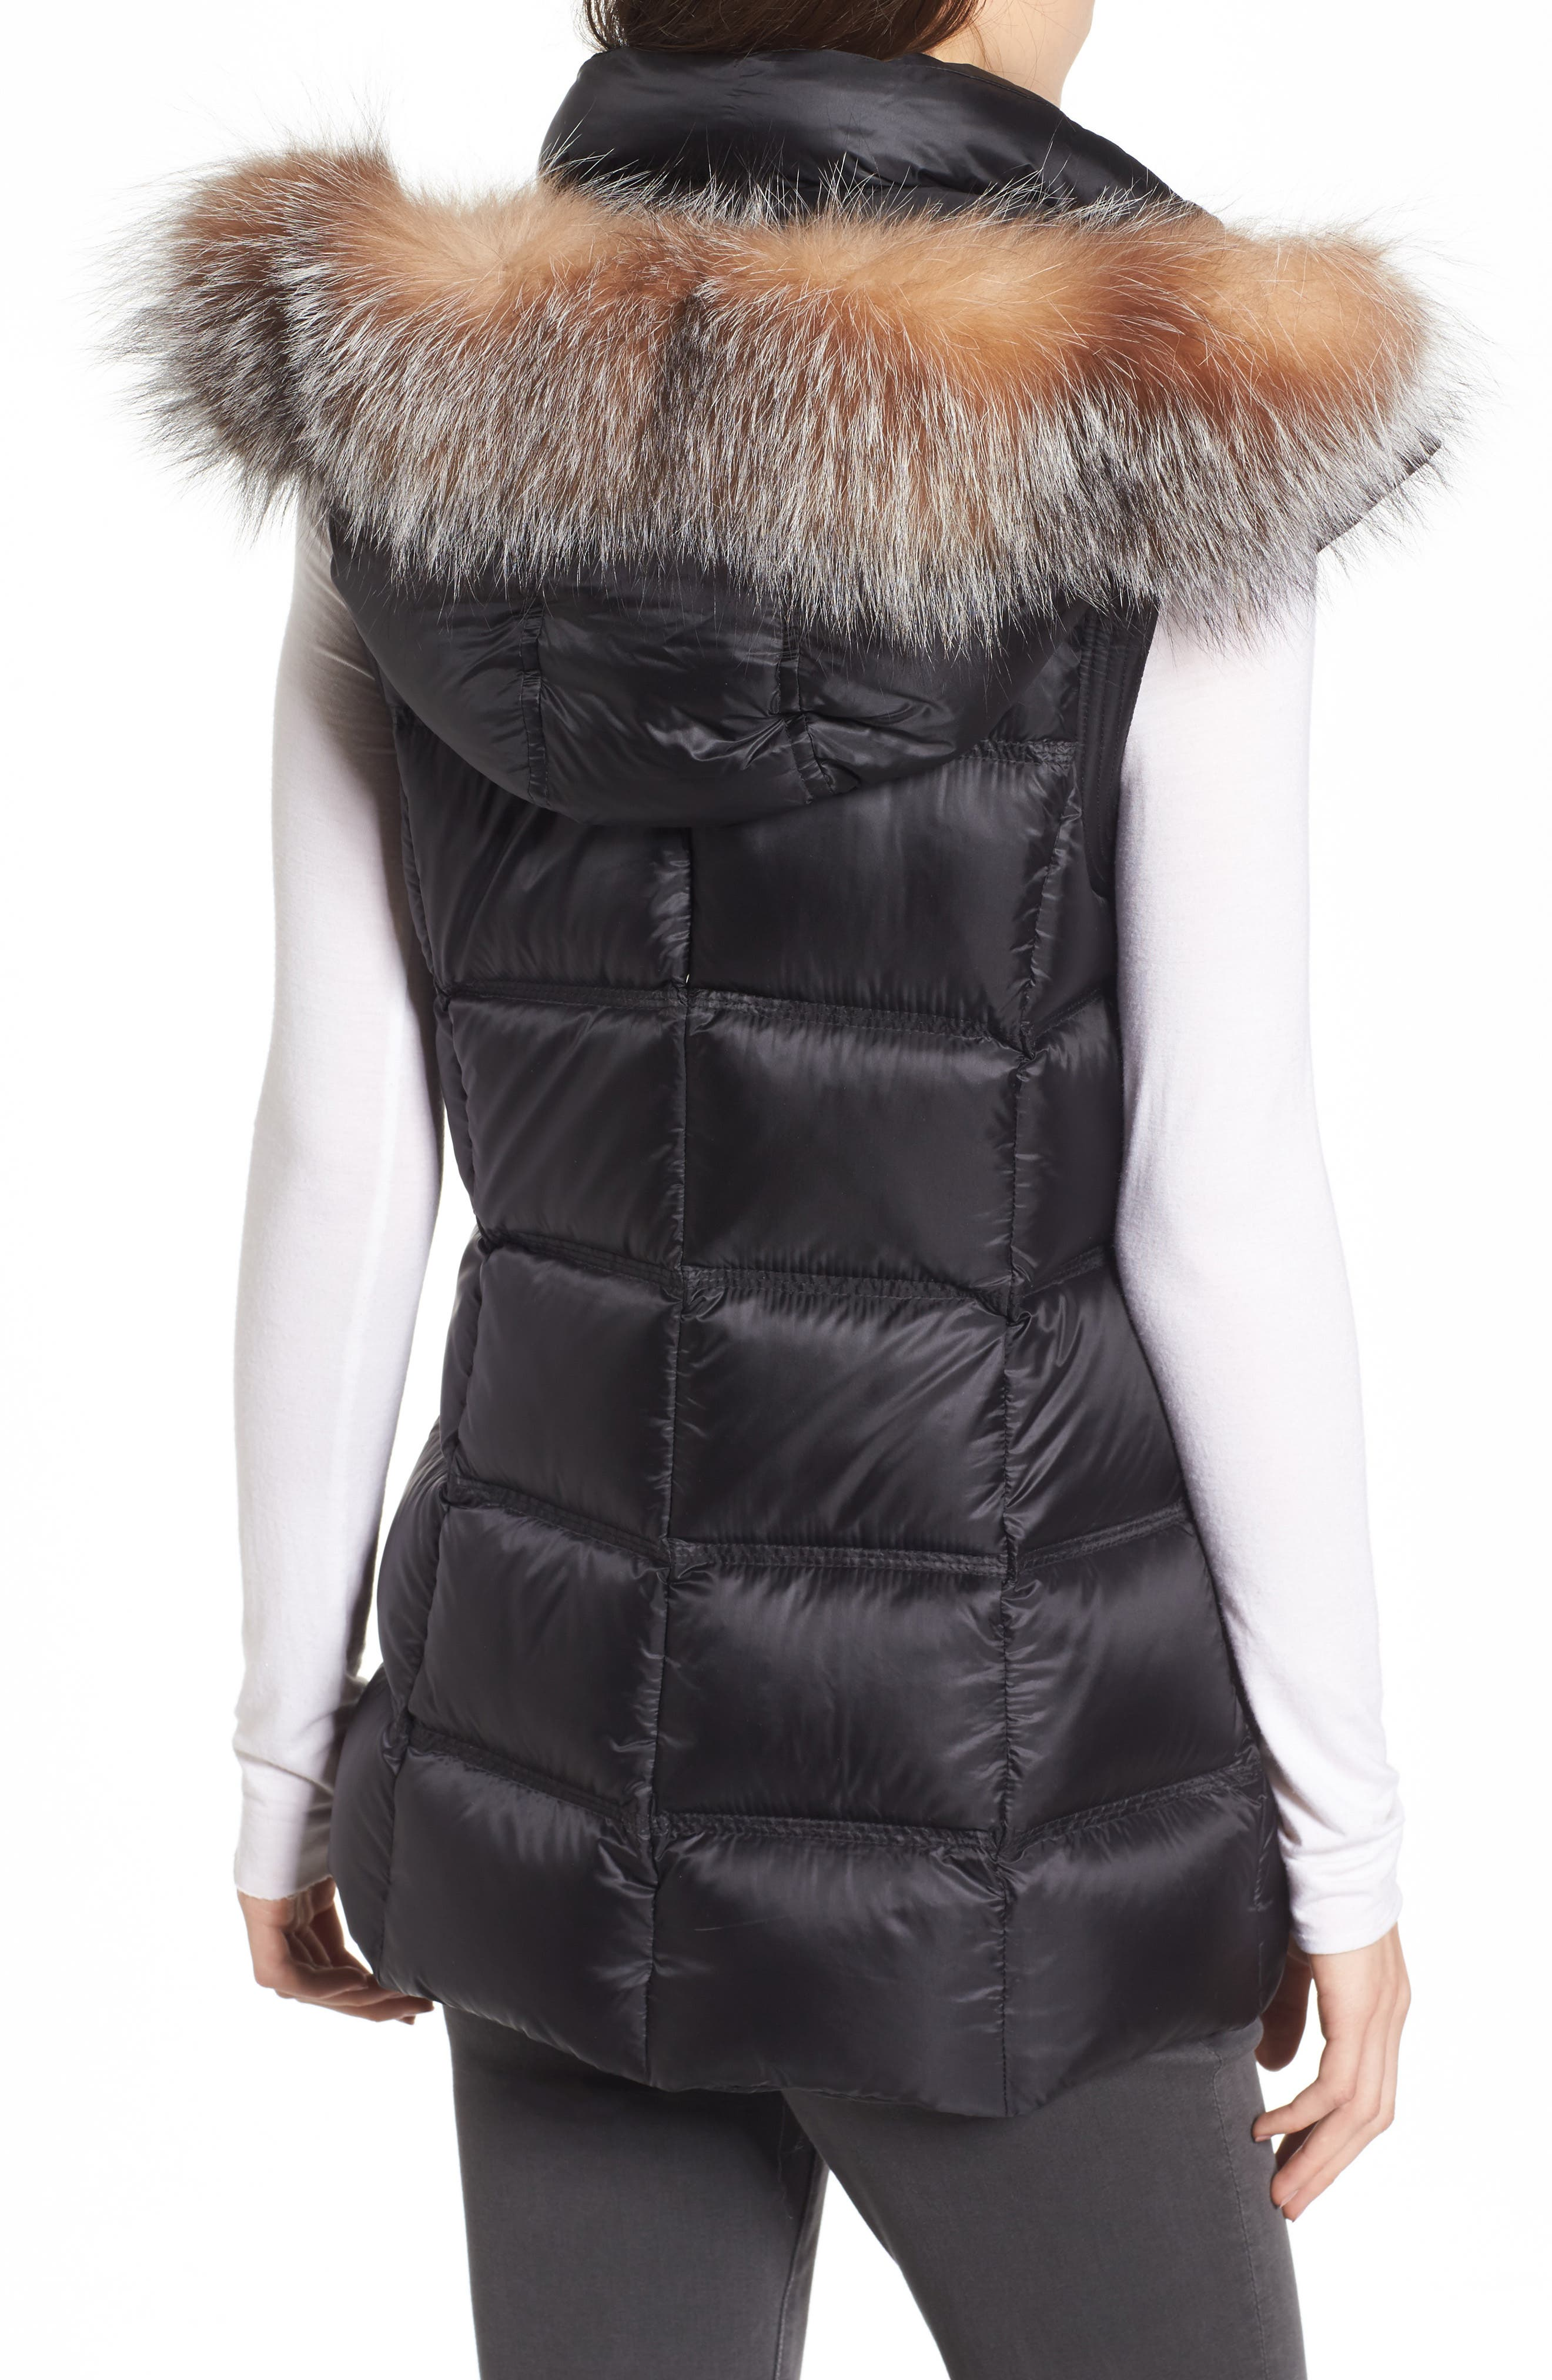 Cambridge Genuine Rabbit Fur & Leather Jacket,                             Alternate thumbnail 2, color,                             001